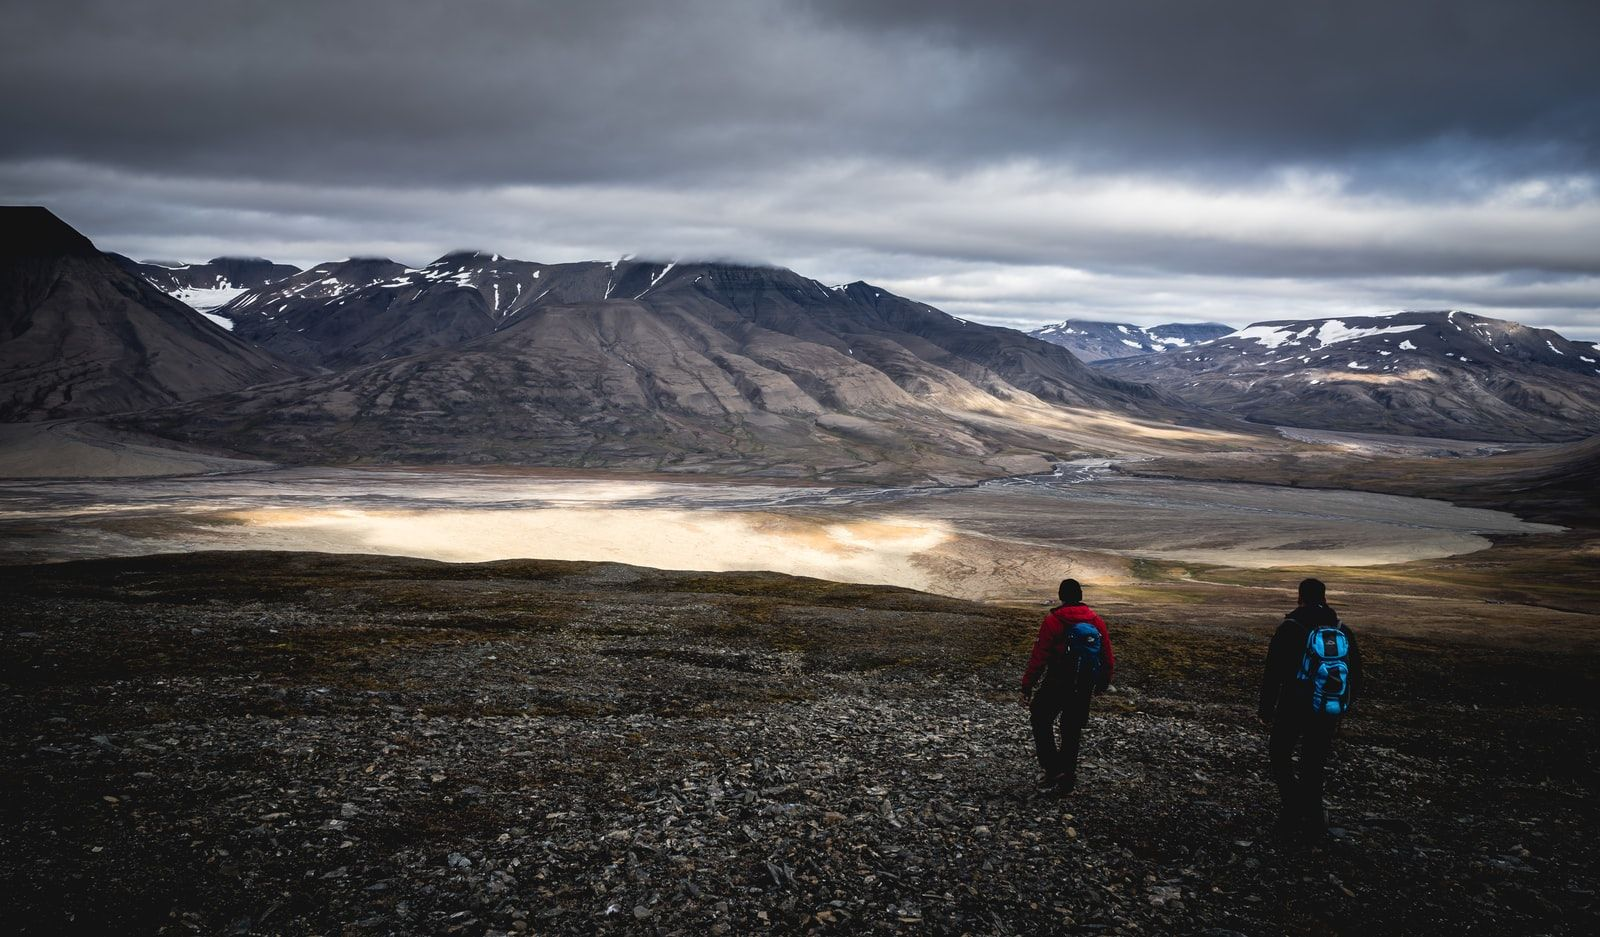 Svalbard, Norway by Patrick Schneider / Unsplash